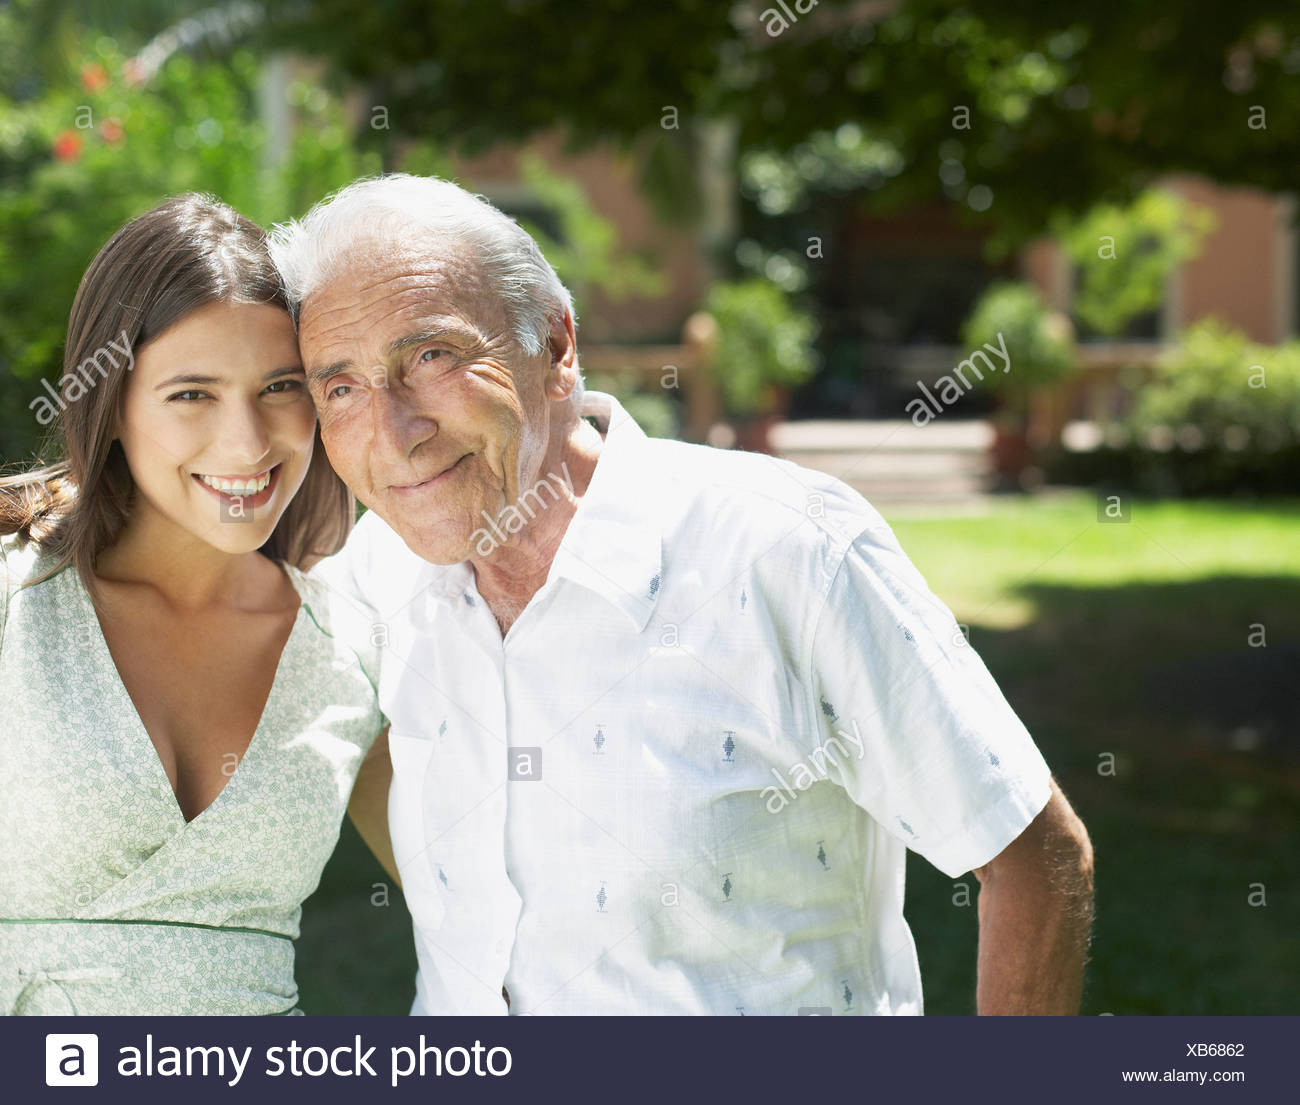 Senior man standing outdoors with arm around woman smiling - Stock Image